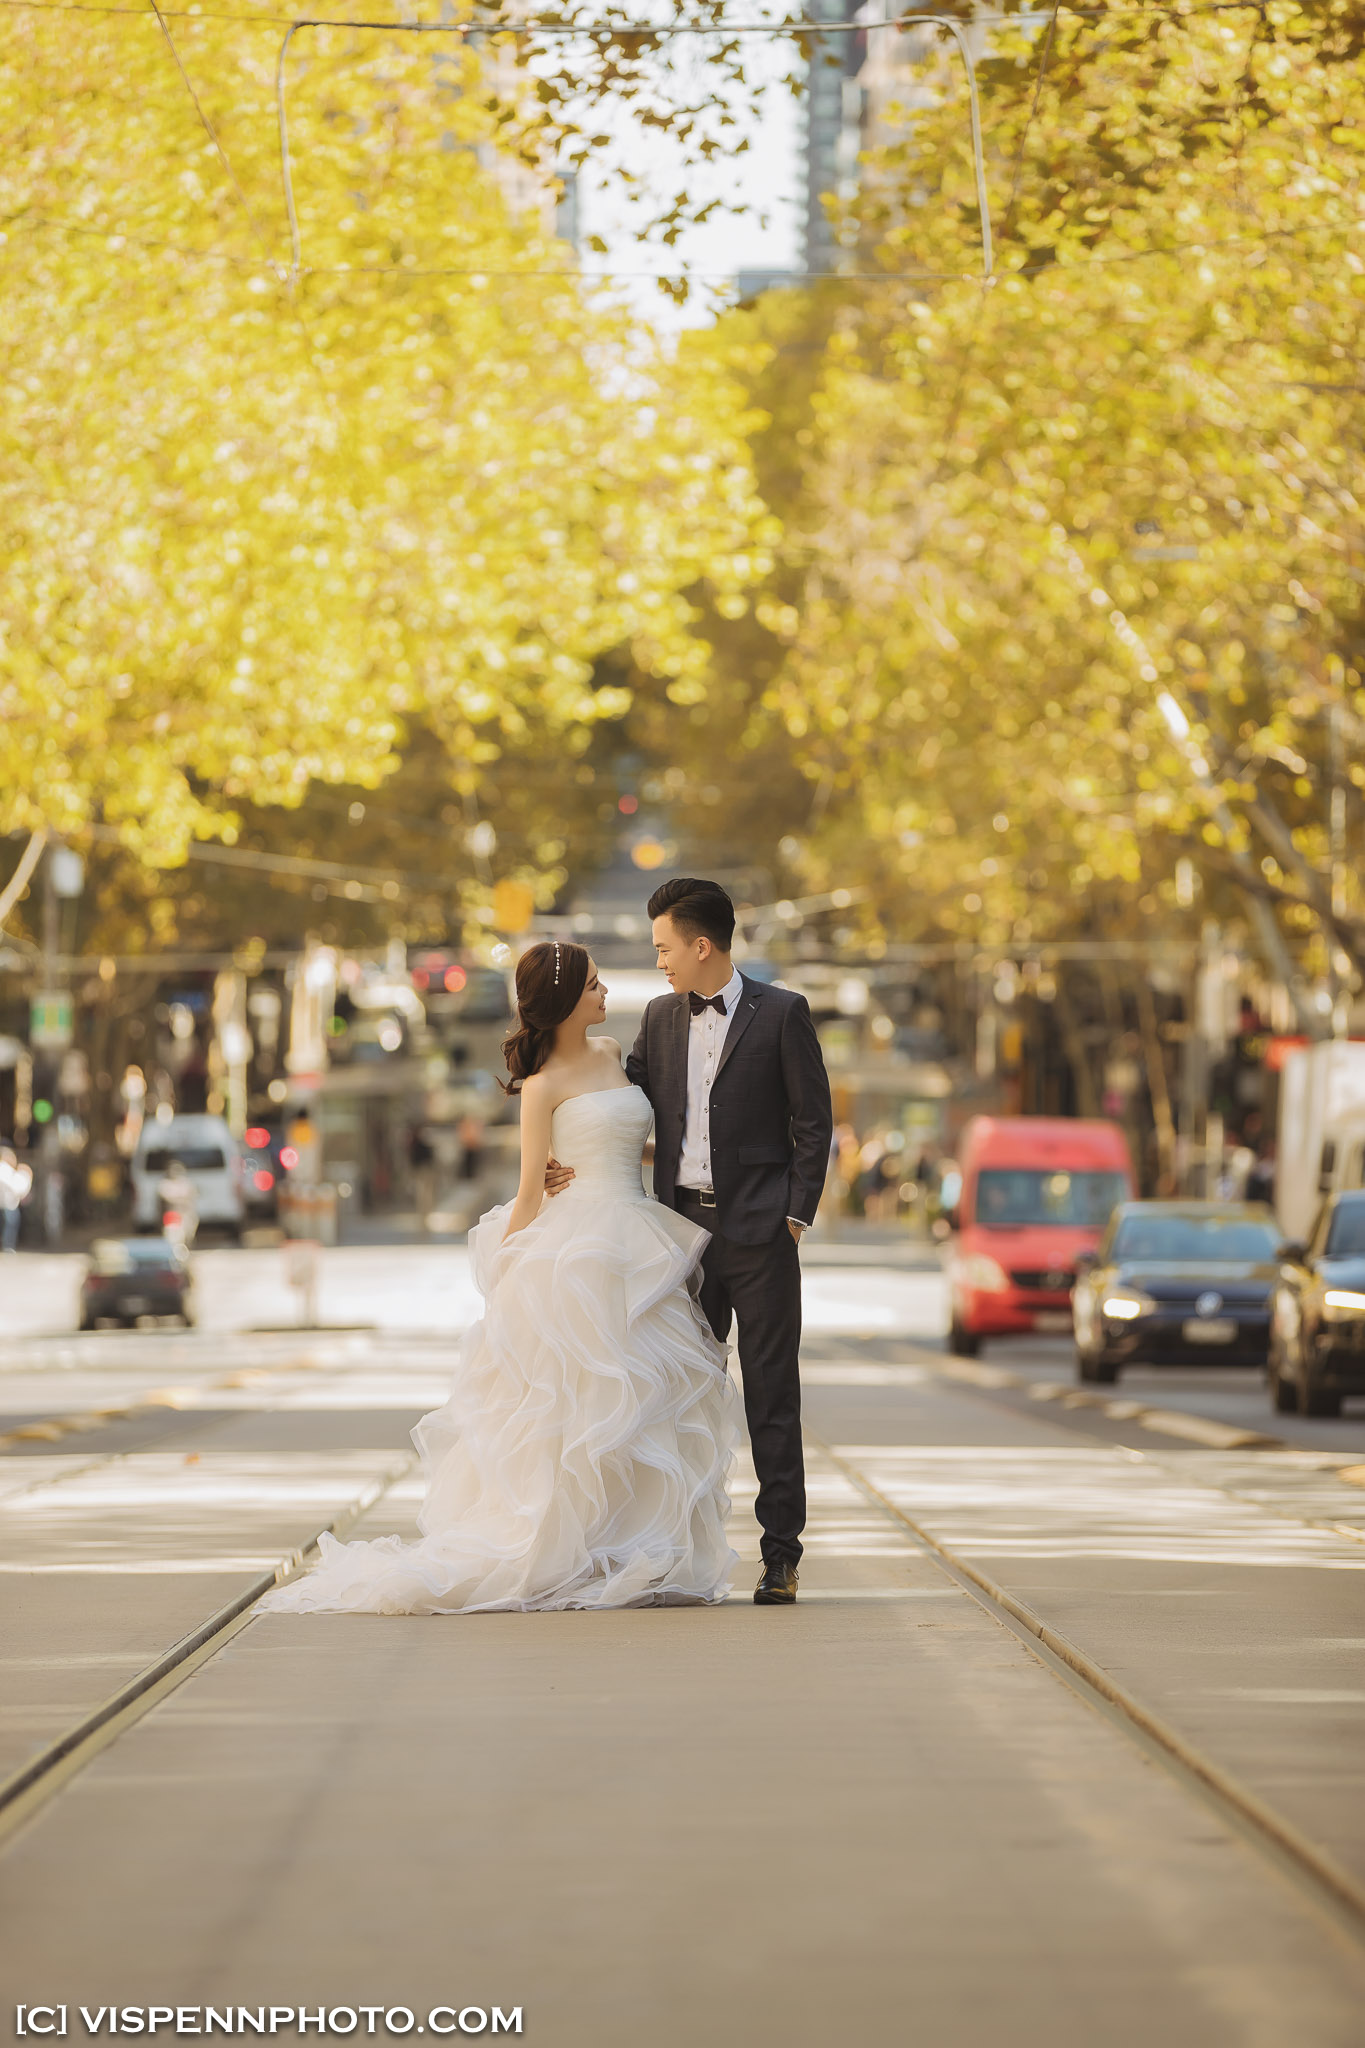 PRE WEDDING Photography Melbourne AndyCHEN 3554 1DX ZHPENN